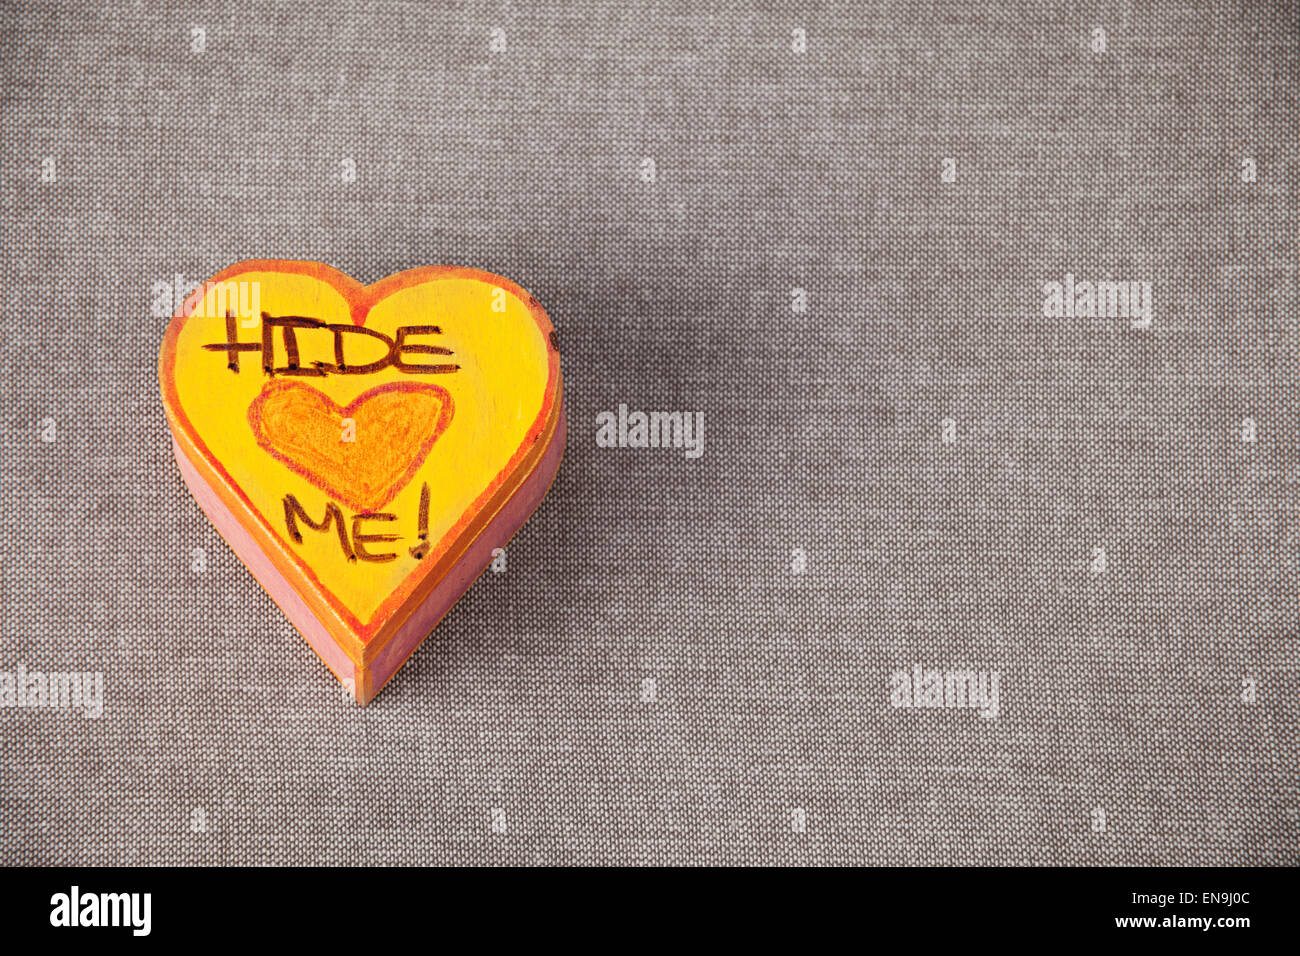 A heart-shaped trinket box with Hide Me written on the top - Stock Image